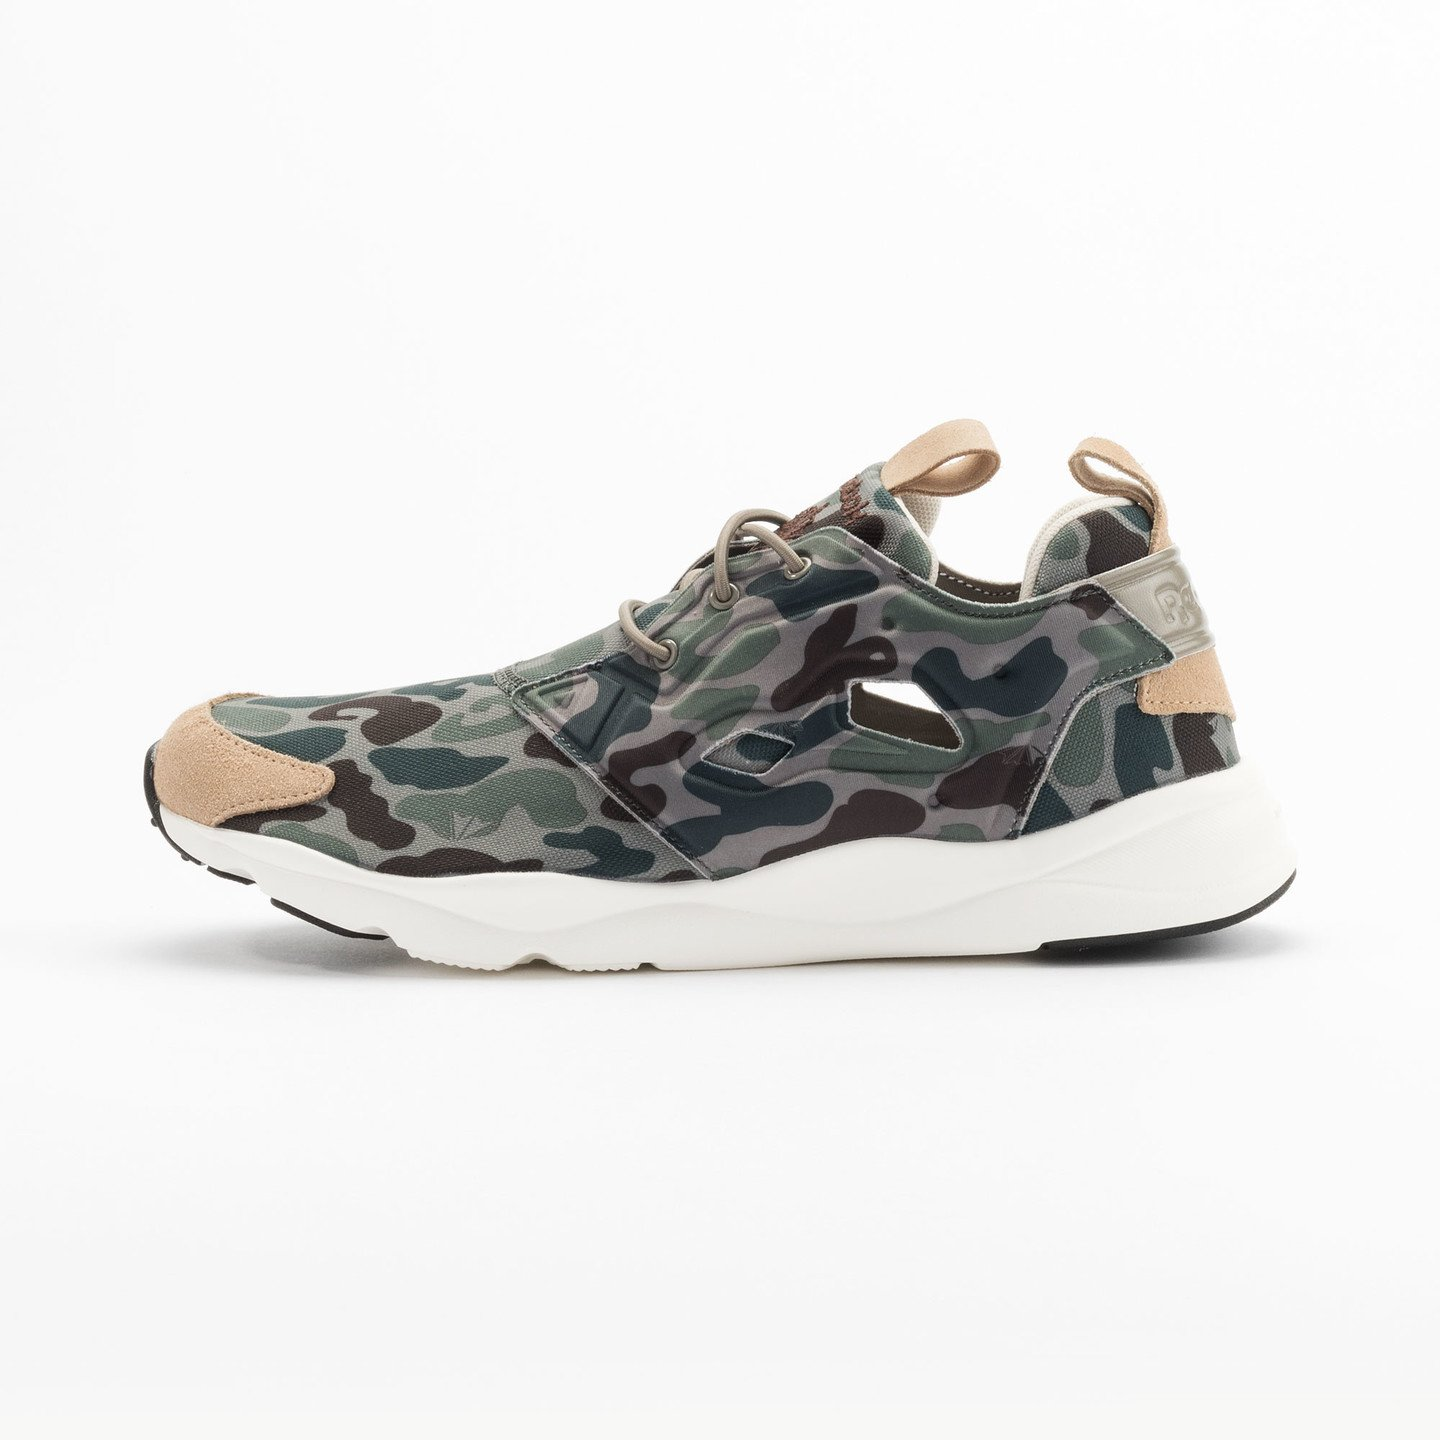 Reebok Furylite Camo Cement / Silvery Green / Sage V67089-47